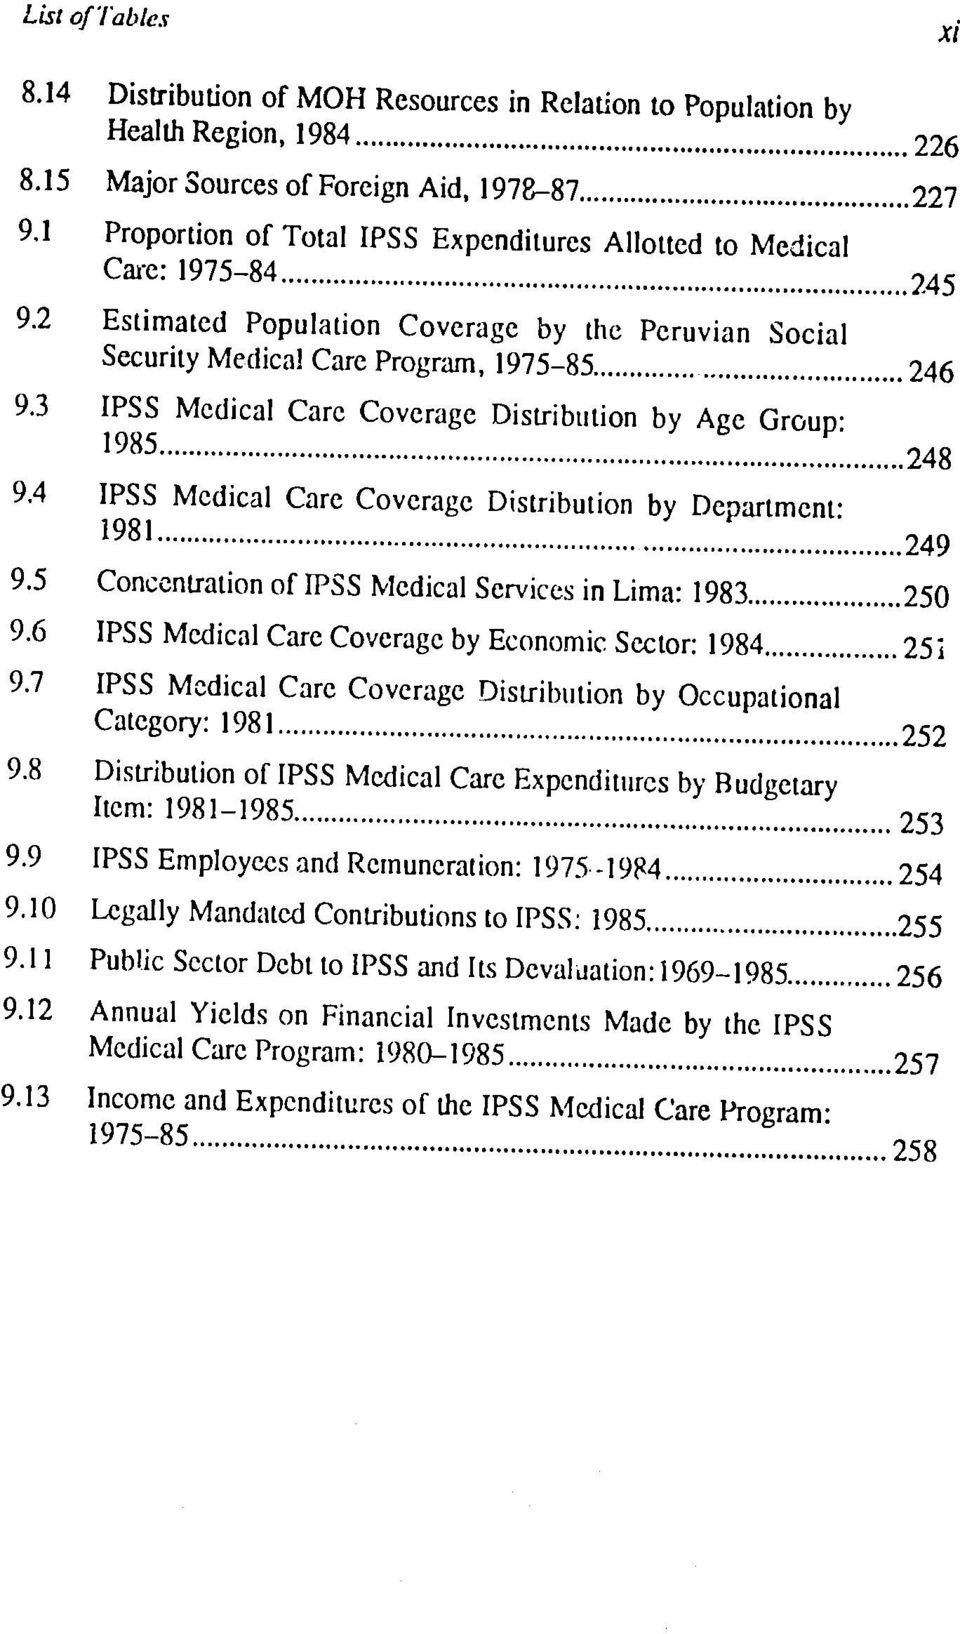 .. 248 9.4 IPSS Medical Care Coverage Distribution by Department: 1981... 24 9 9.5 Concentration of IPSS ledical Services in Lima: 1983... 25 9.6 IPSS Medical Care Coverage by Economic Sector: 1984.